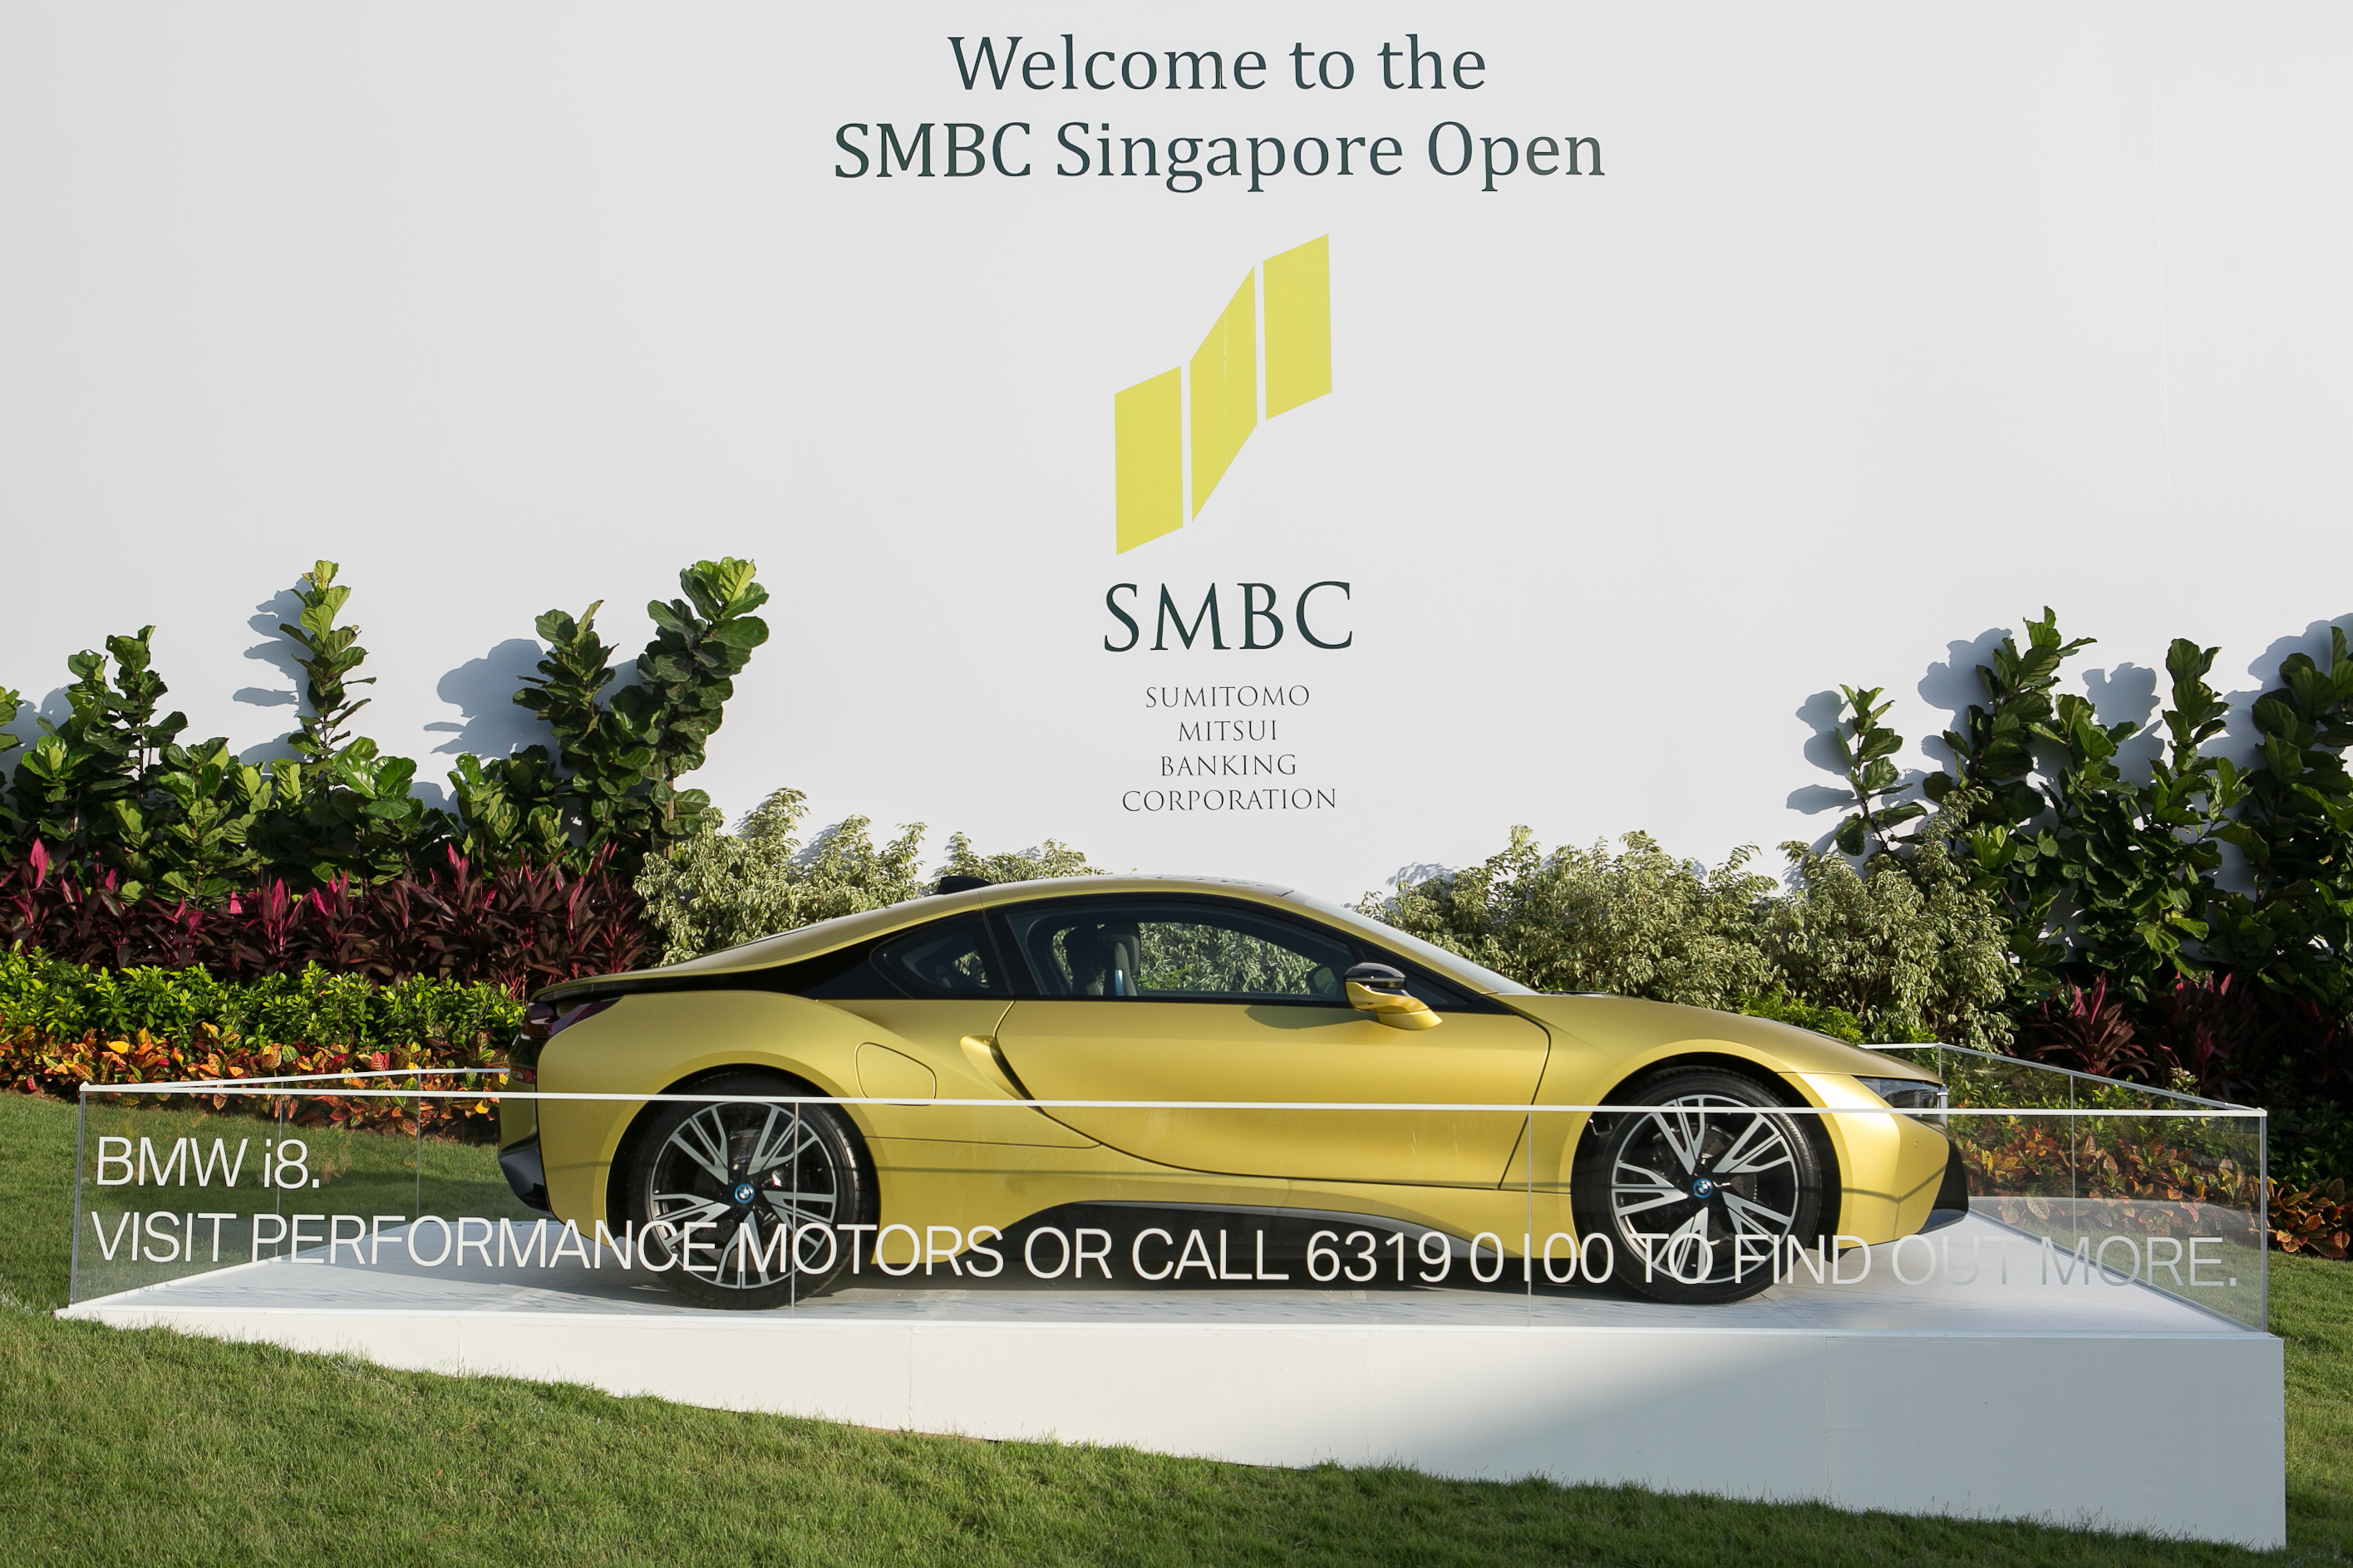 Bmw Returns As The Official Car Of Smbc Singapore Open